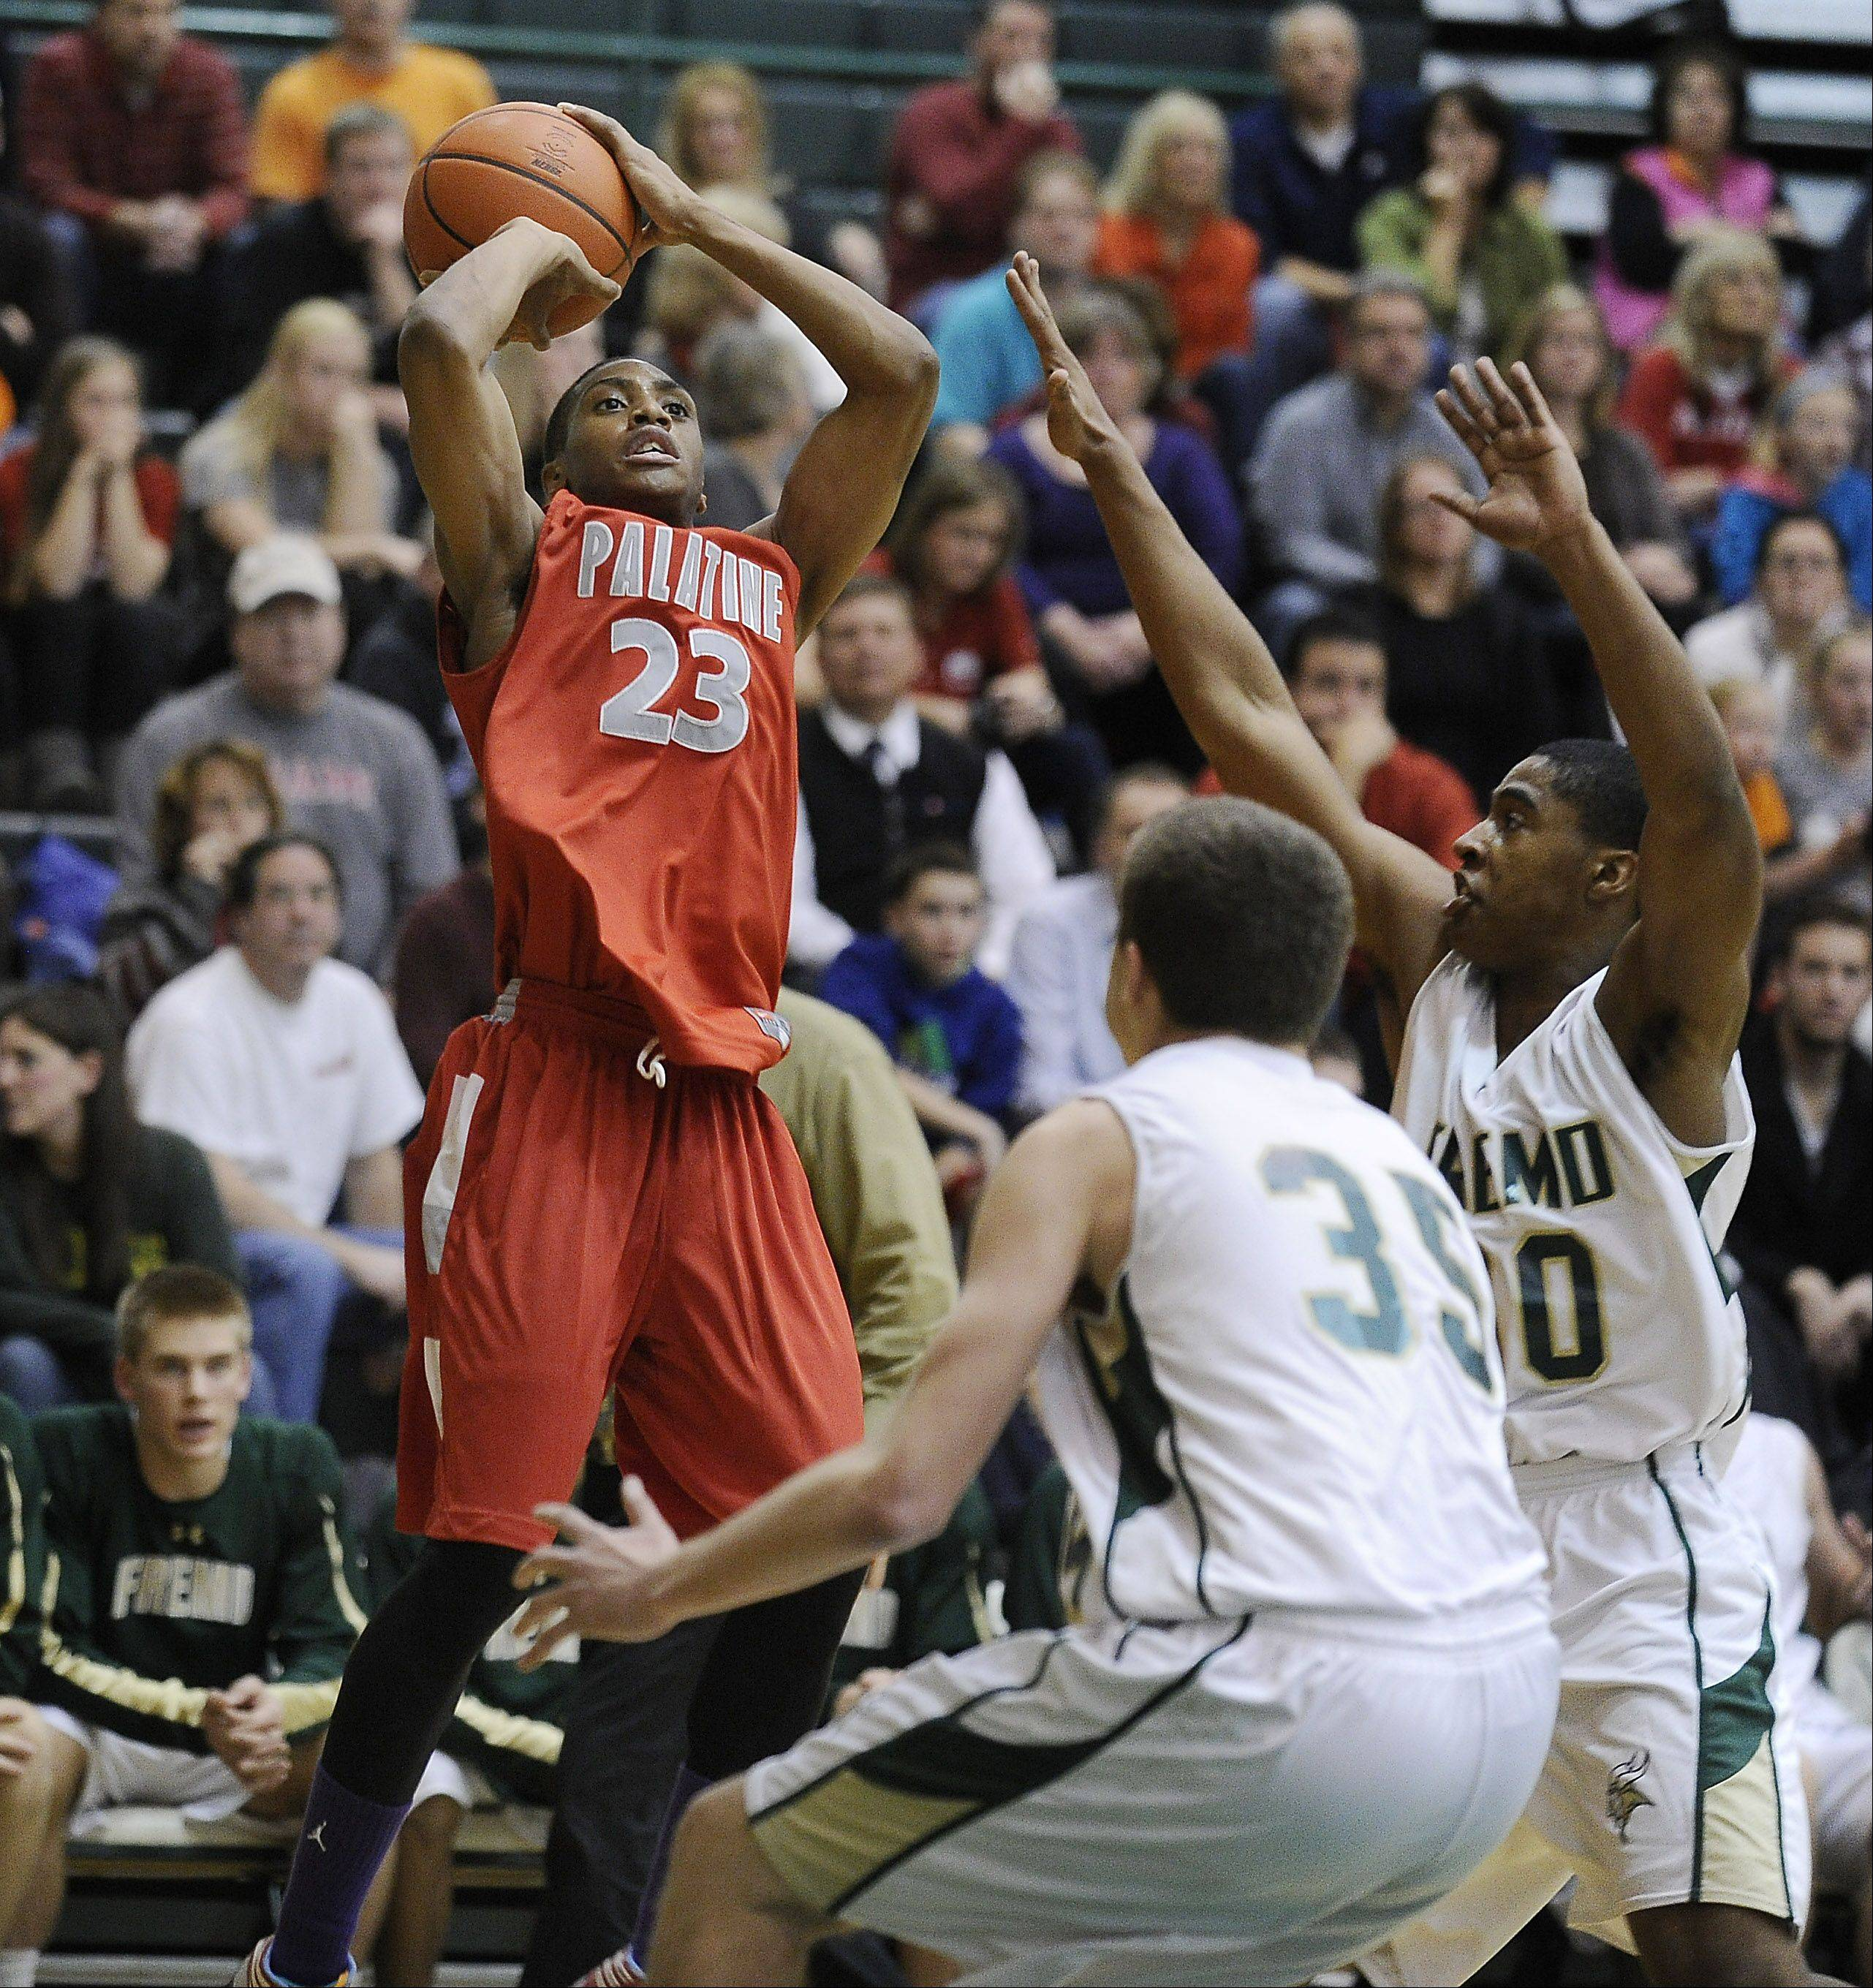 Palatine's Roosevelt Smart does a fade-away jump shot for a basket while under pressure against Fremd.